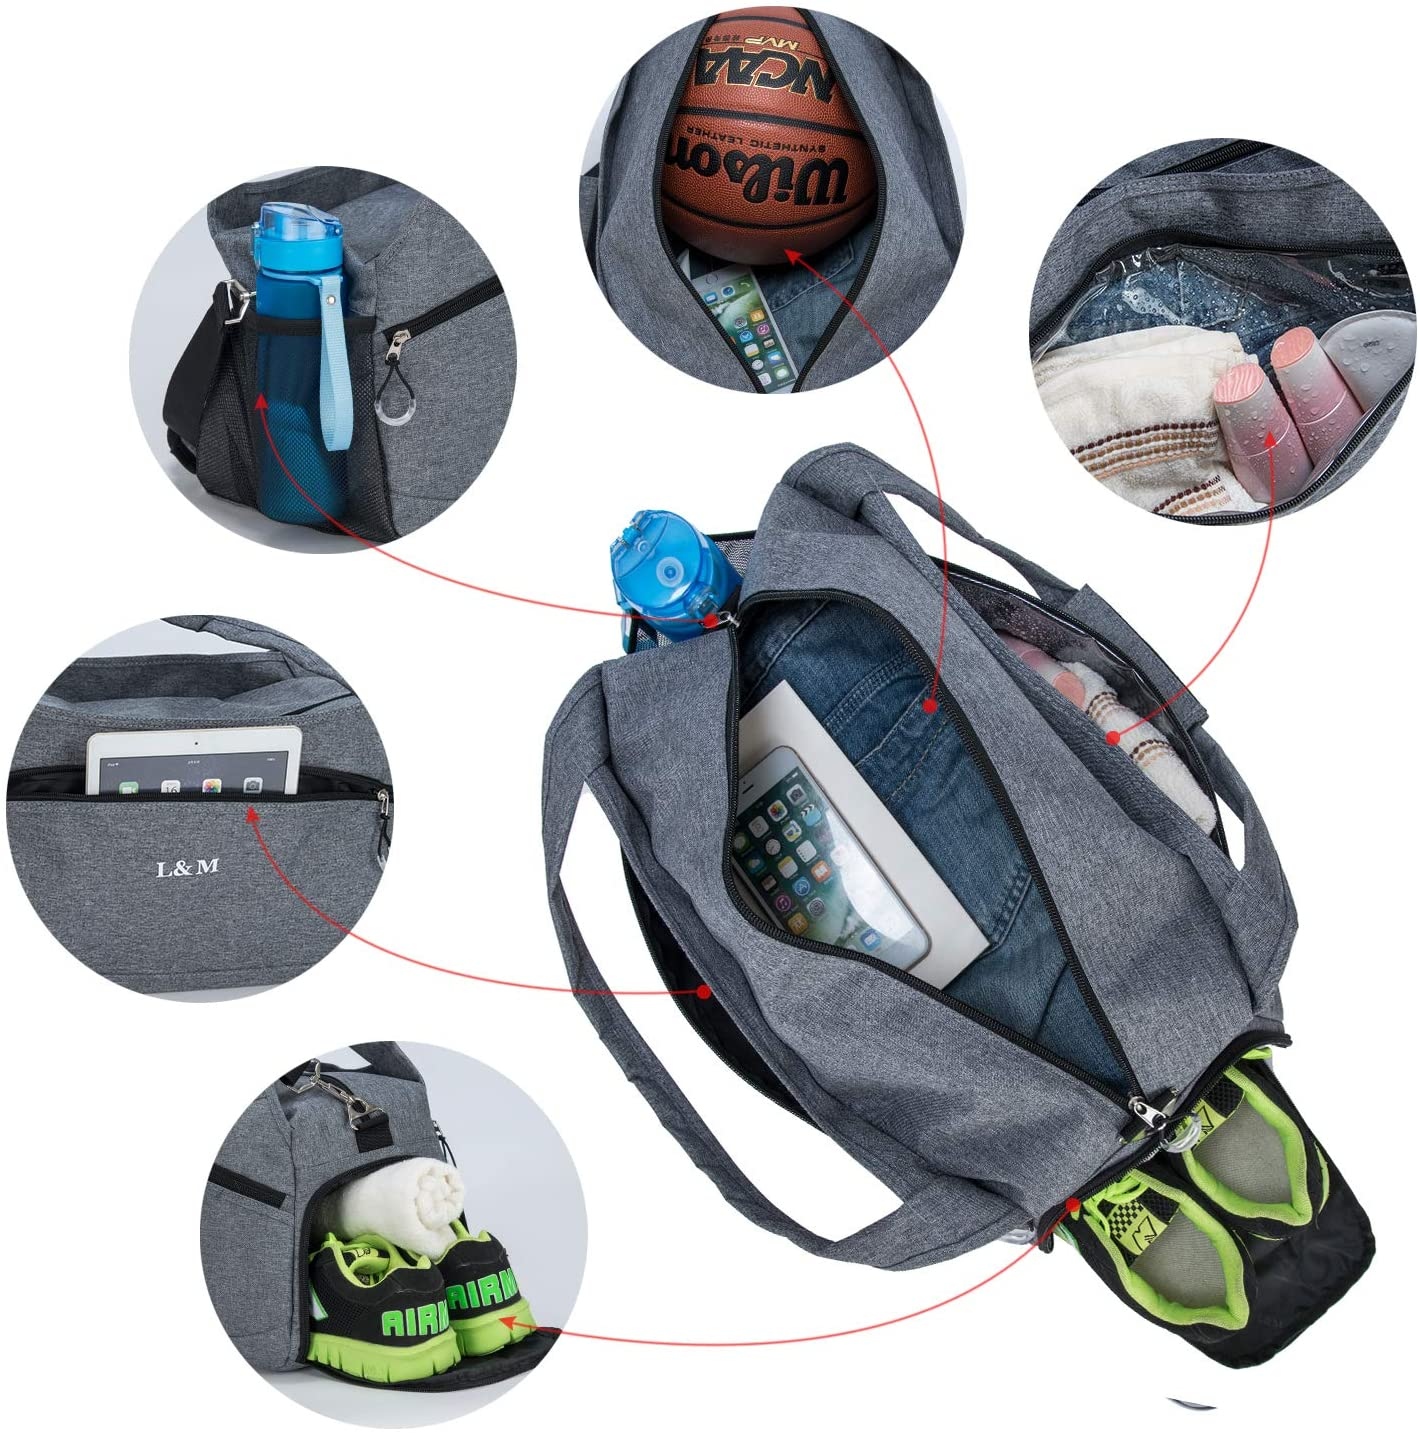 OEM Custom Hiking Fanny Pack Suppliers –  Sports Travel Duffel Bag with Shoes Pocket – Kinghow